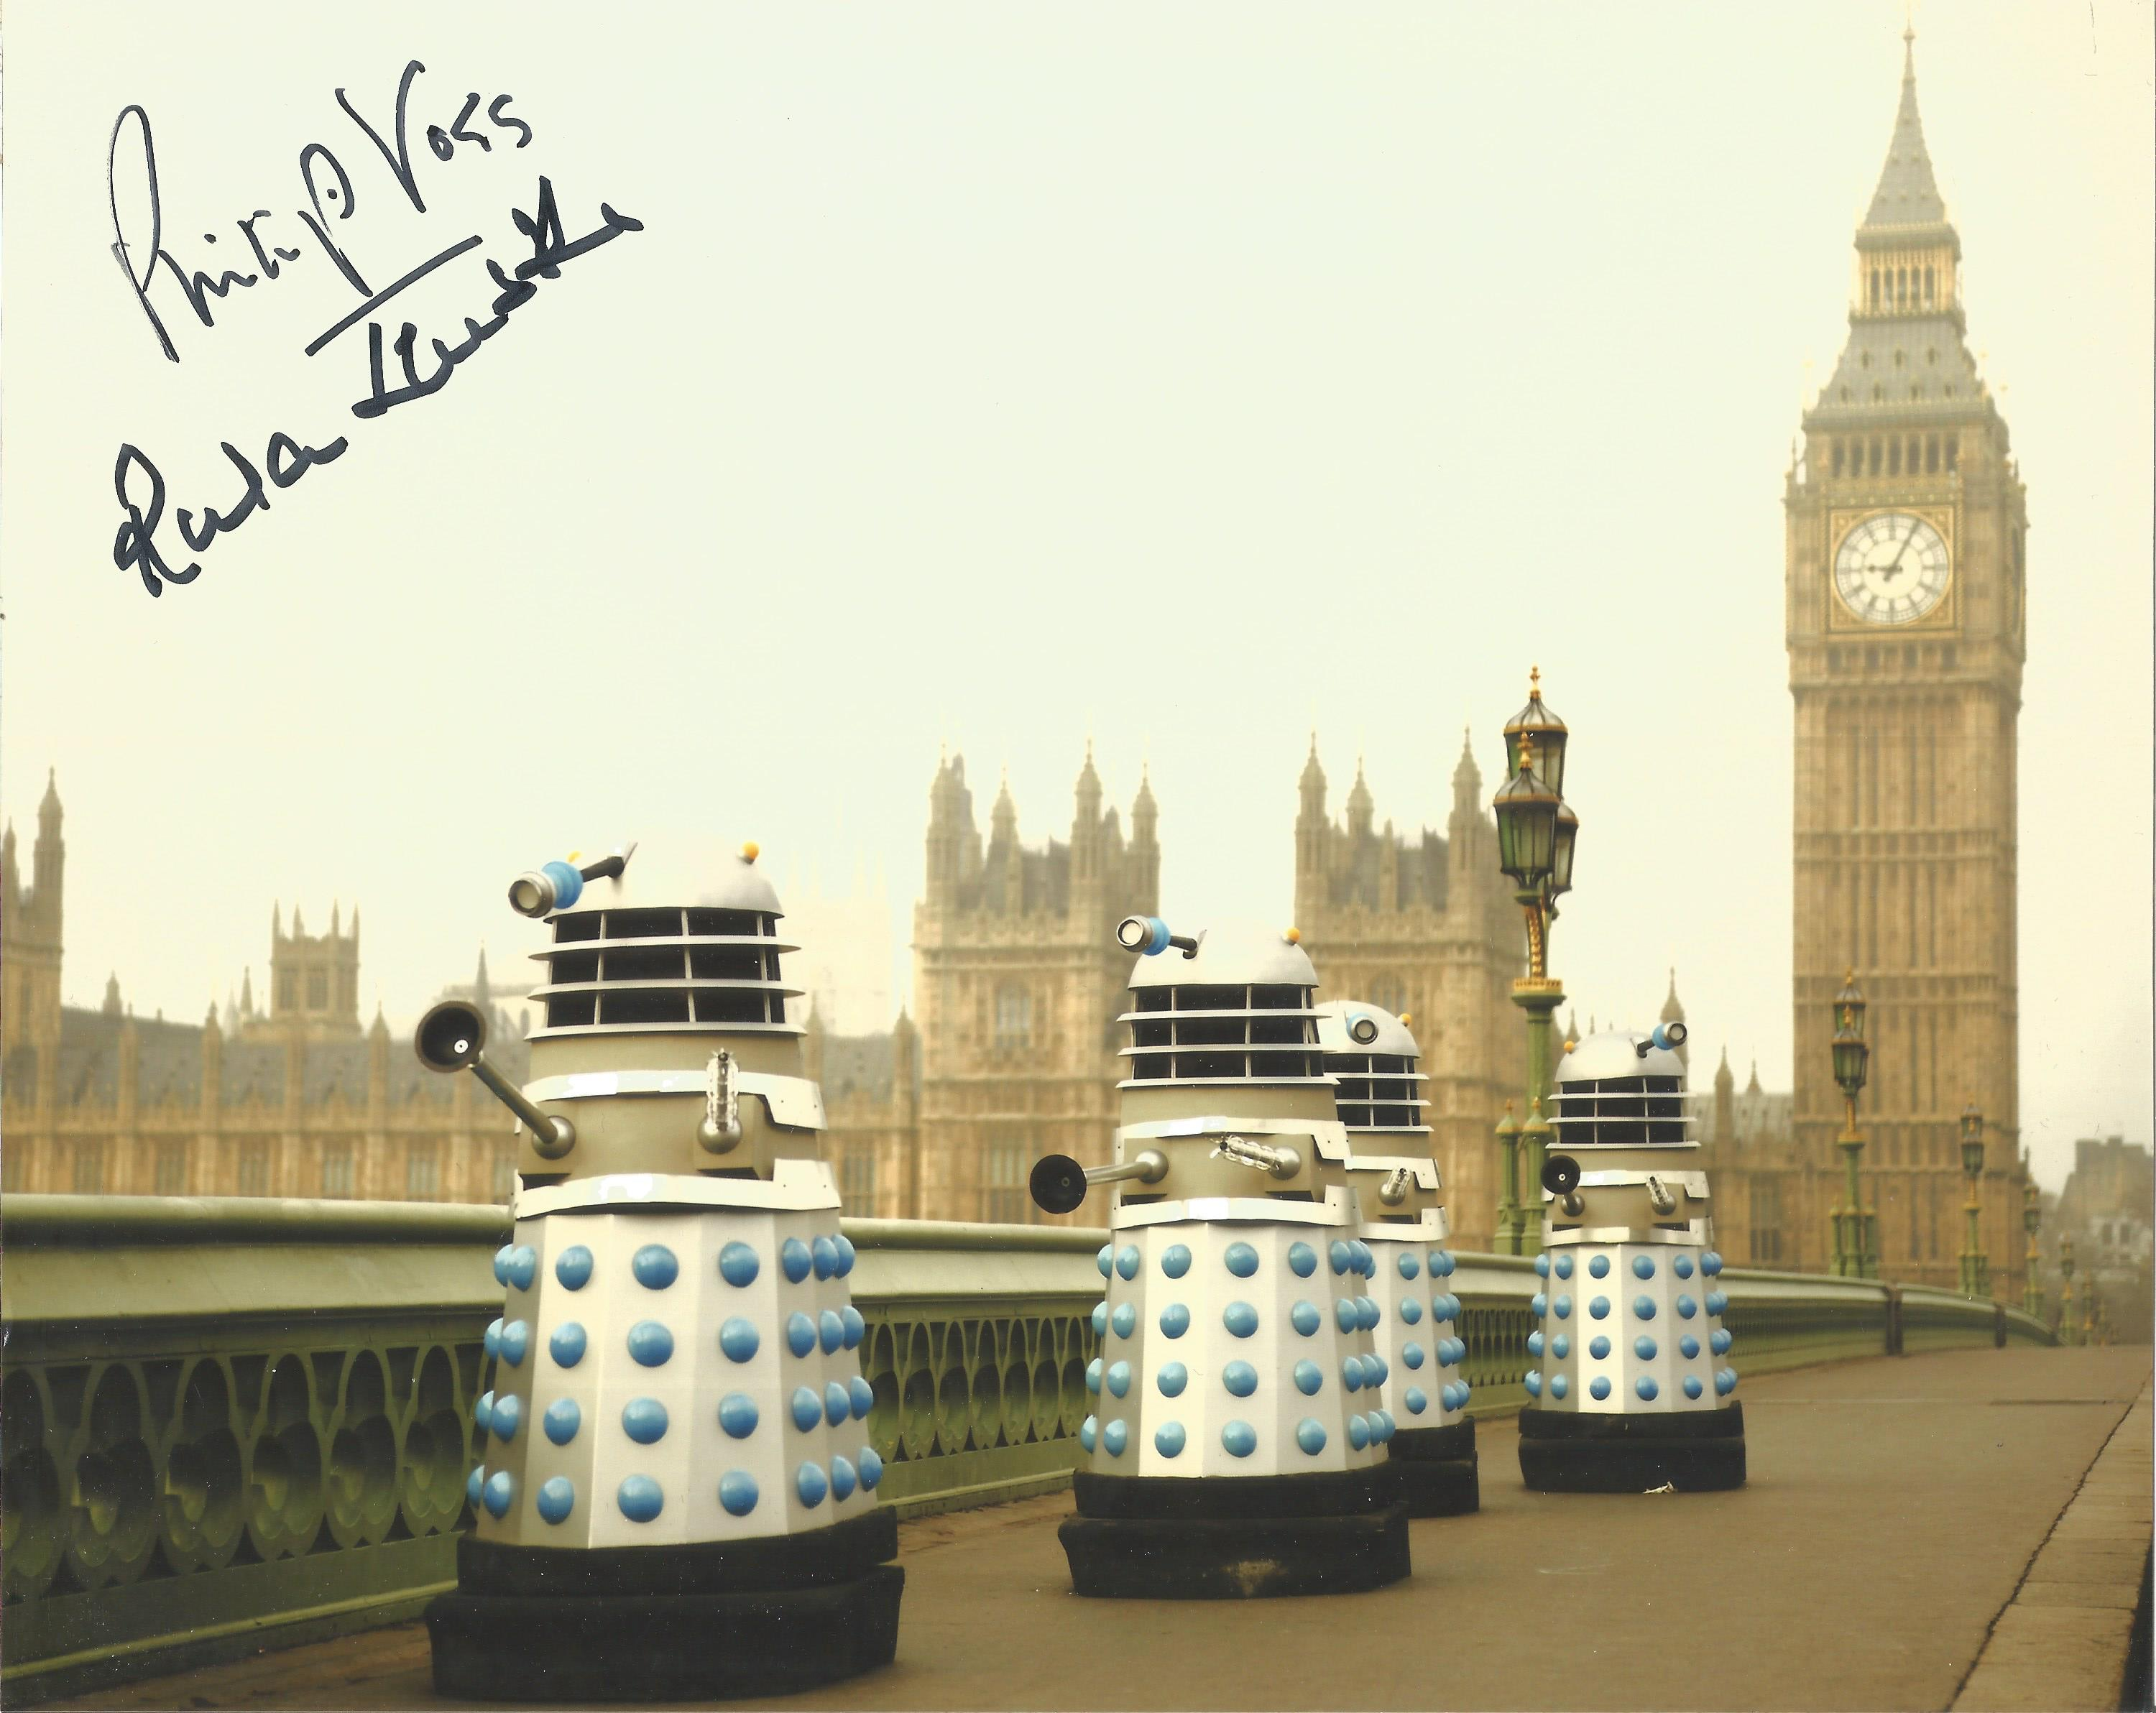 Philip Voss and Rula Lenska signed Dalek image from British Television show Doctor Who. Image is